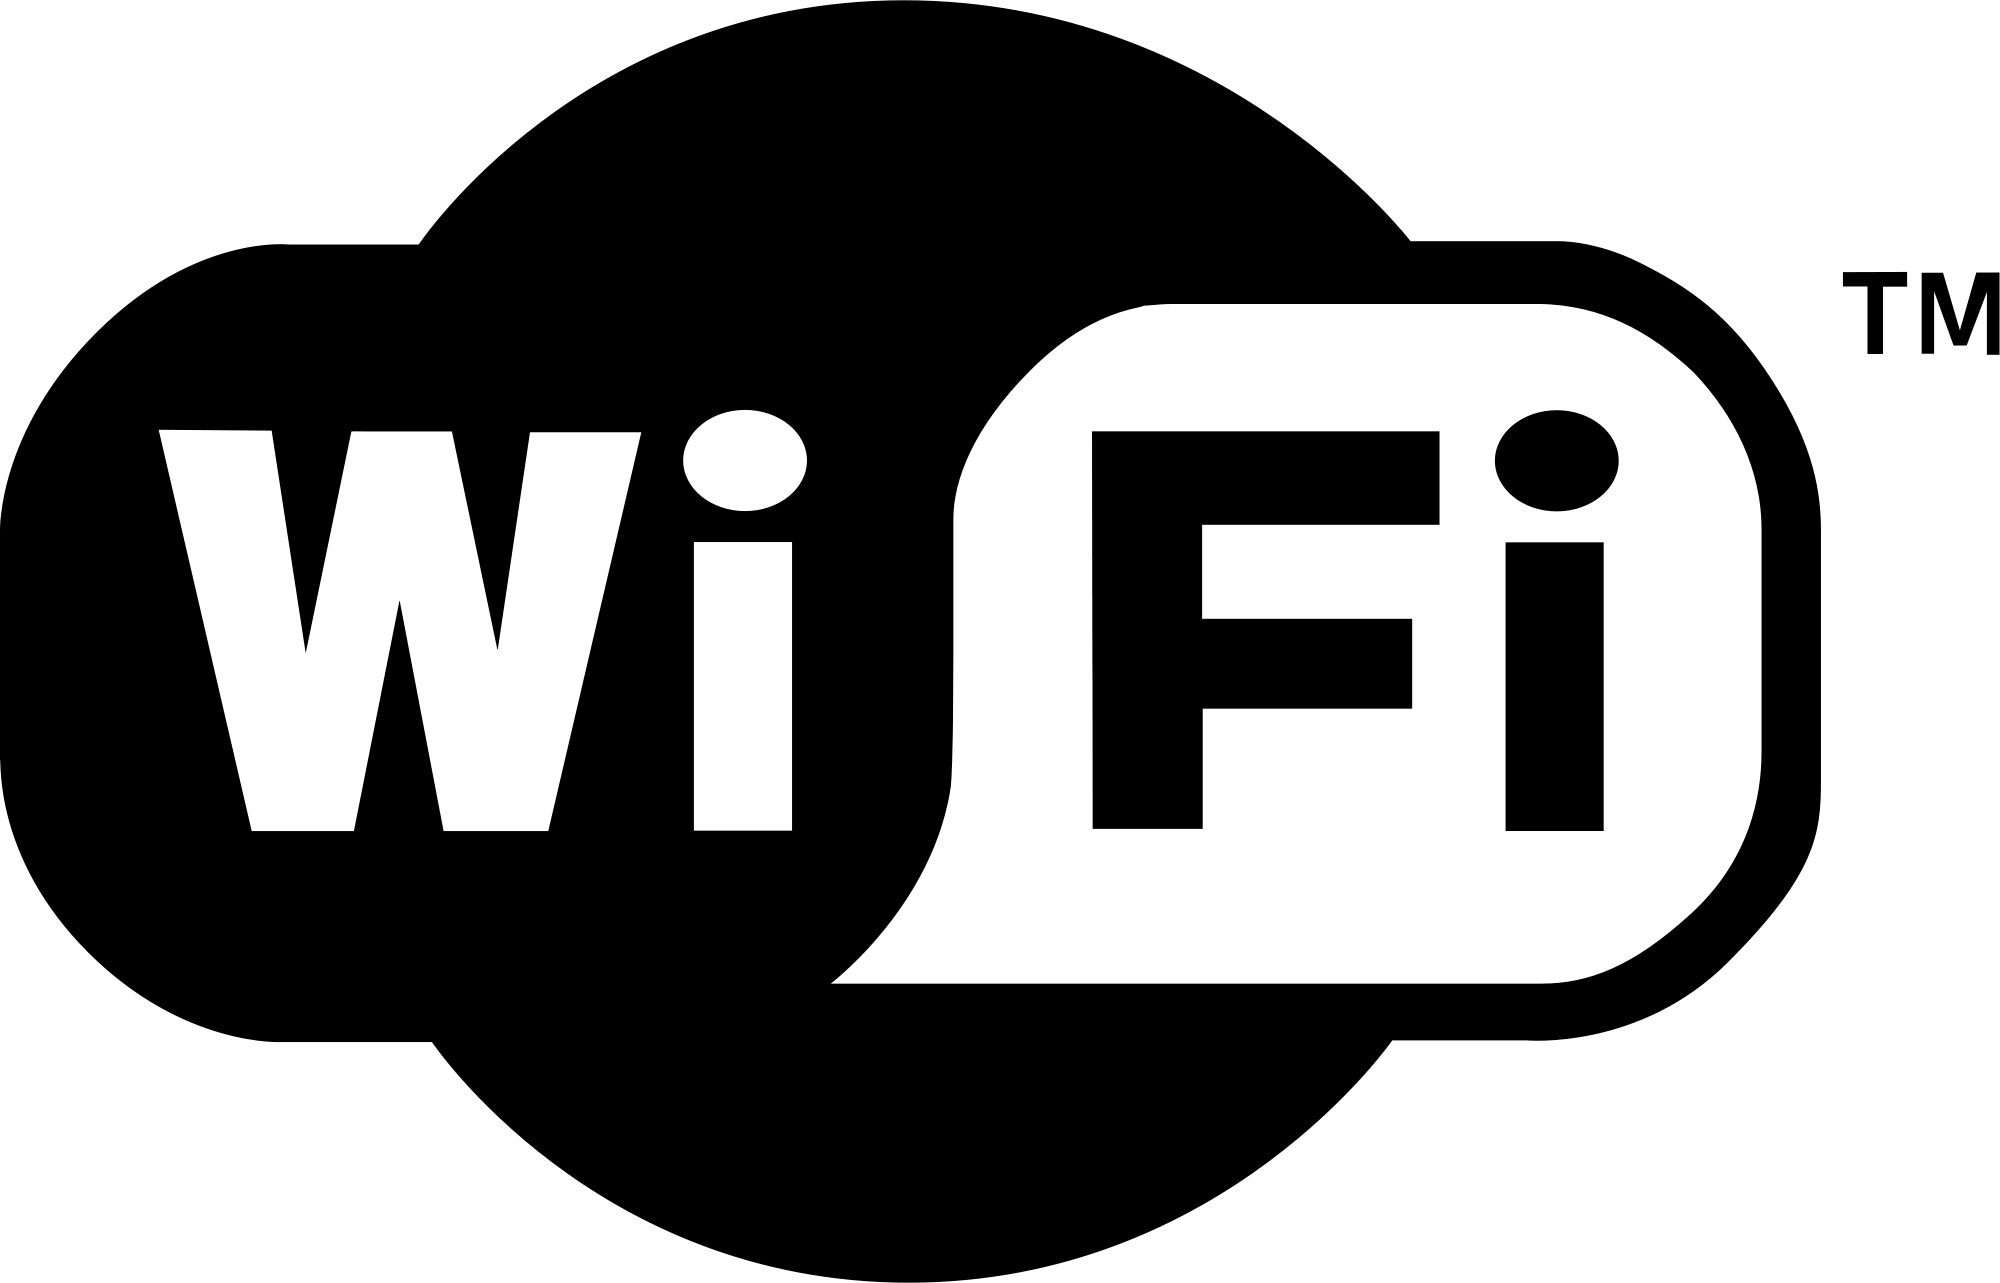 Wifi zone png. Icon